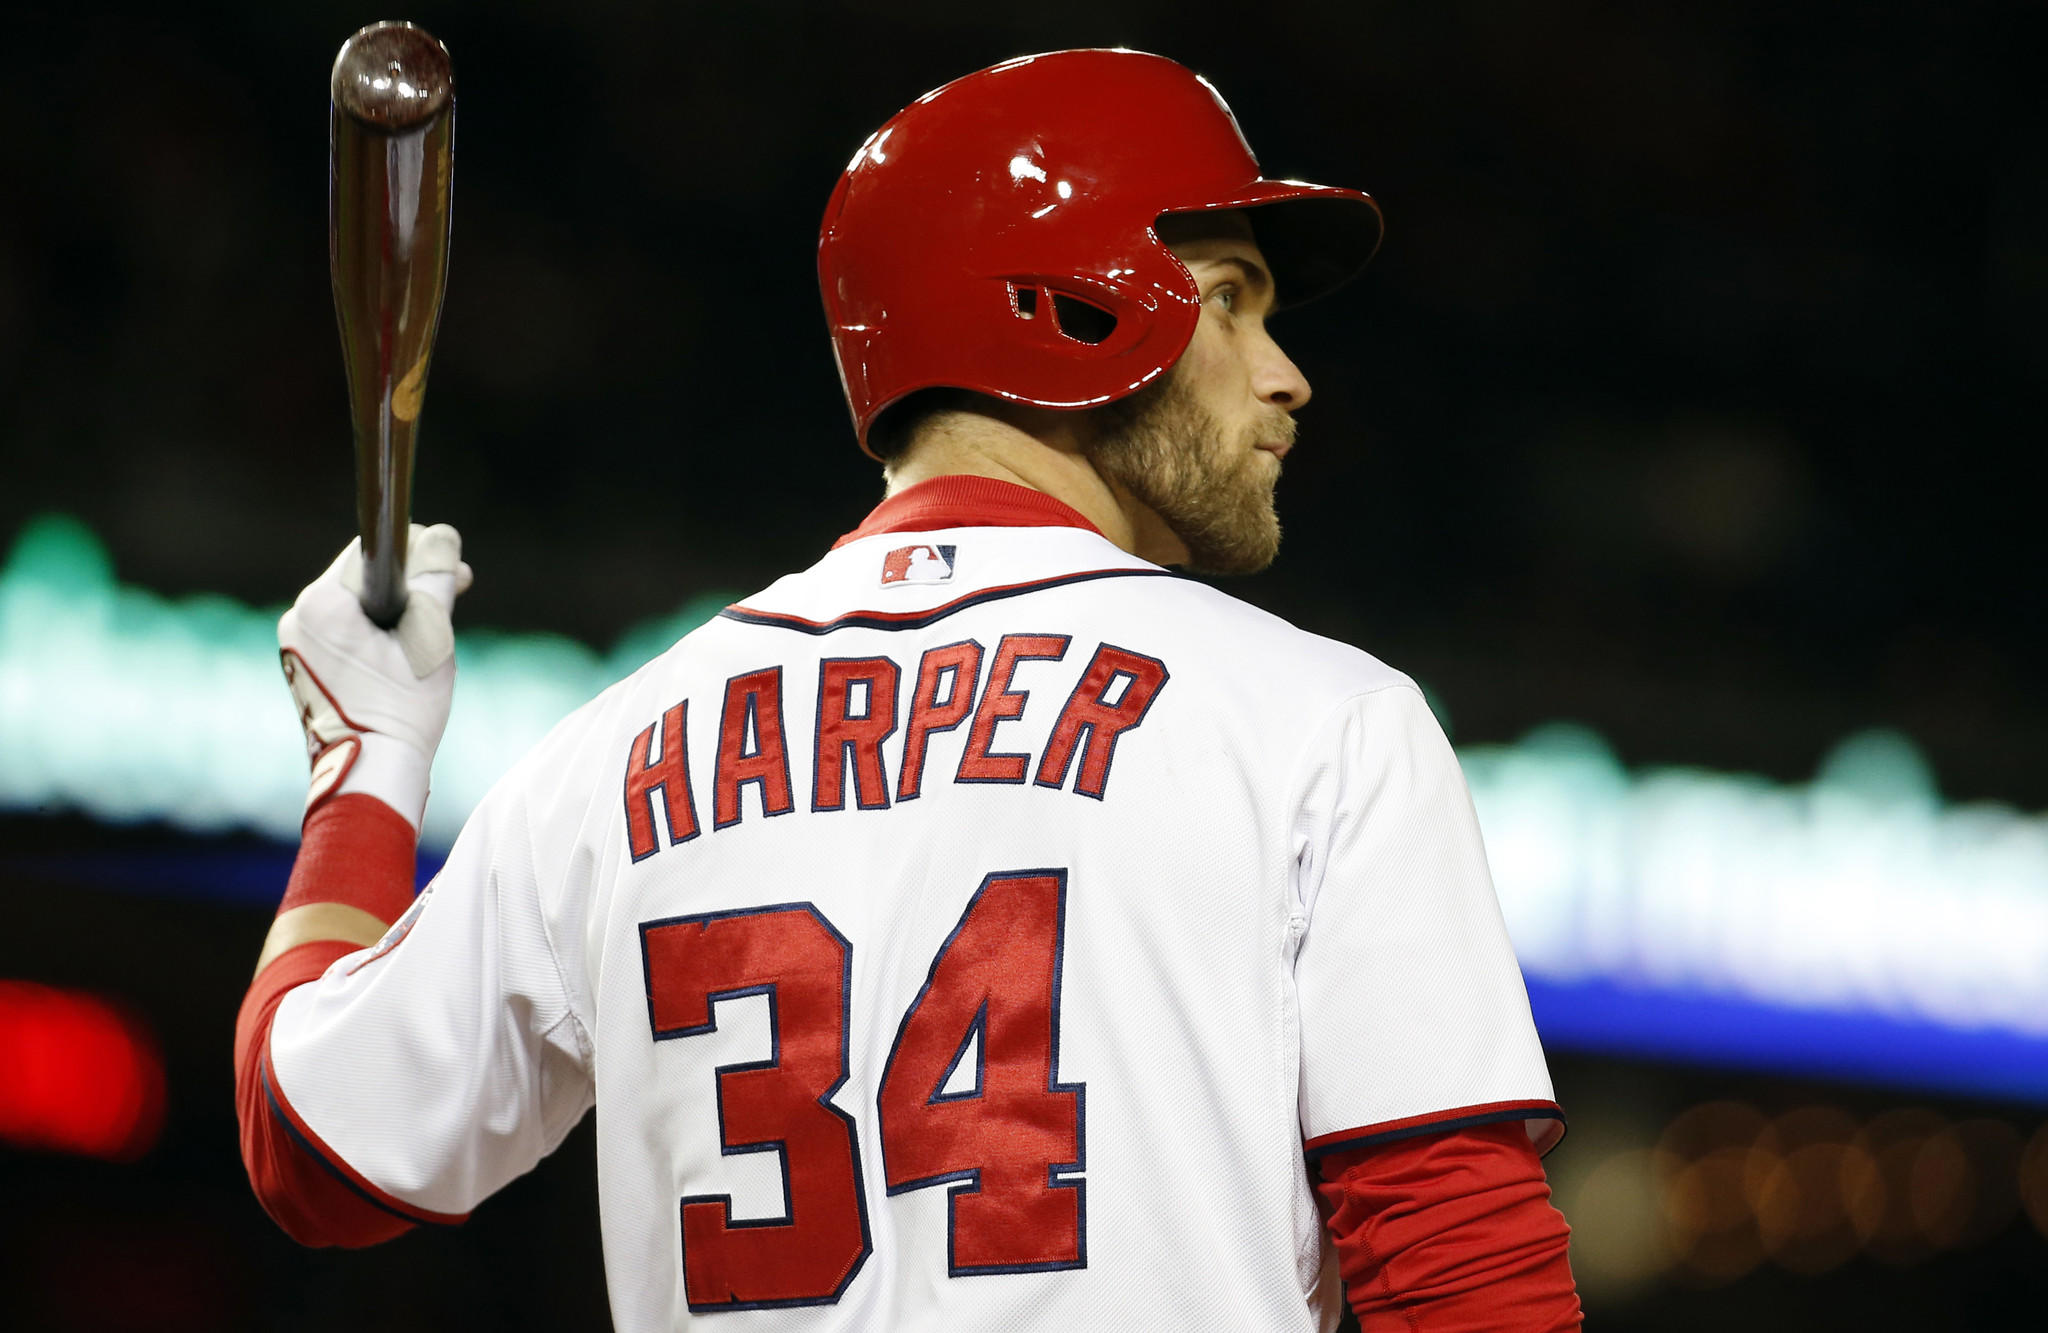 Washington Nationals left fielder Bryce Harper says he doesn't care if critics believe he's not as talented as Angels star Mike Trout.